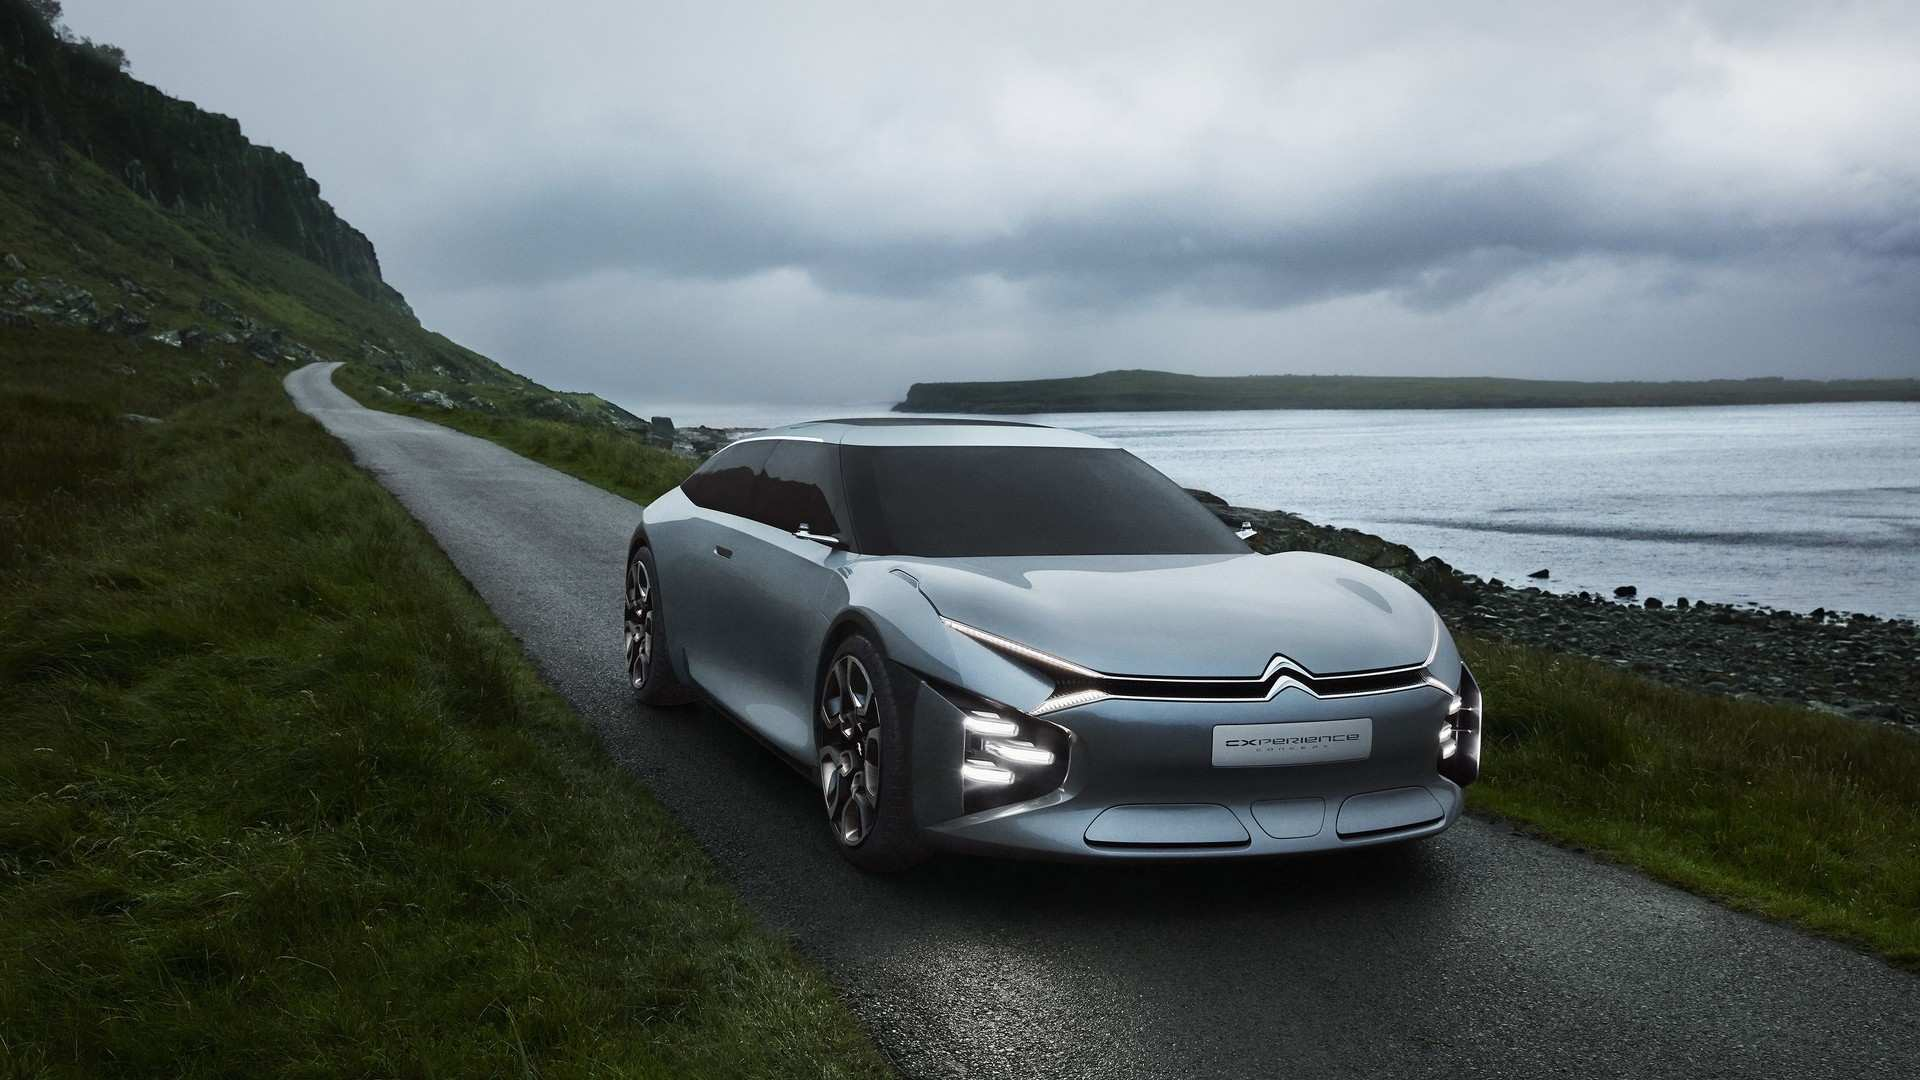 17 All New 2020 Citroen Configurations with 2020 Citroen